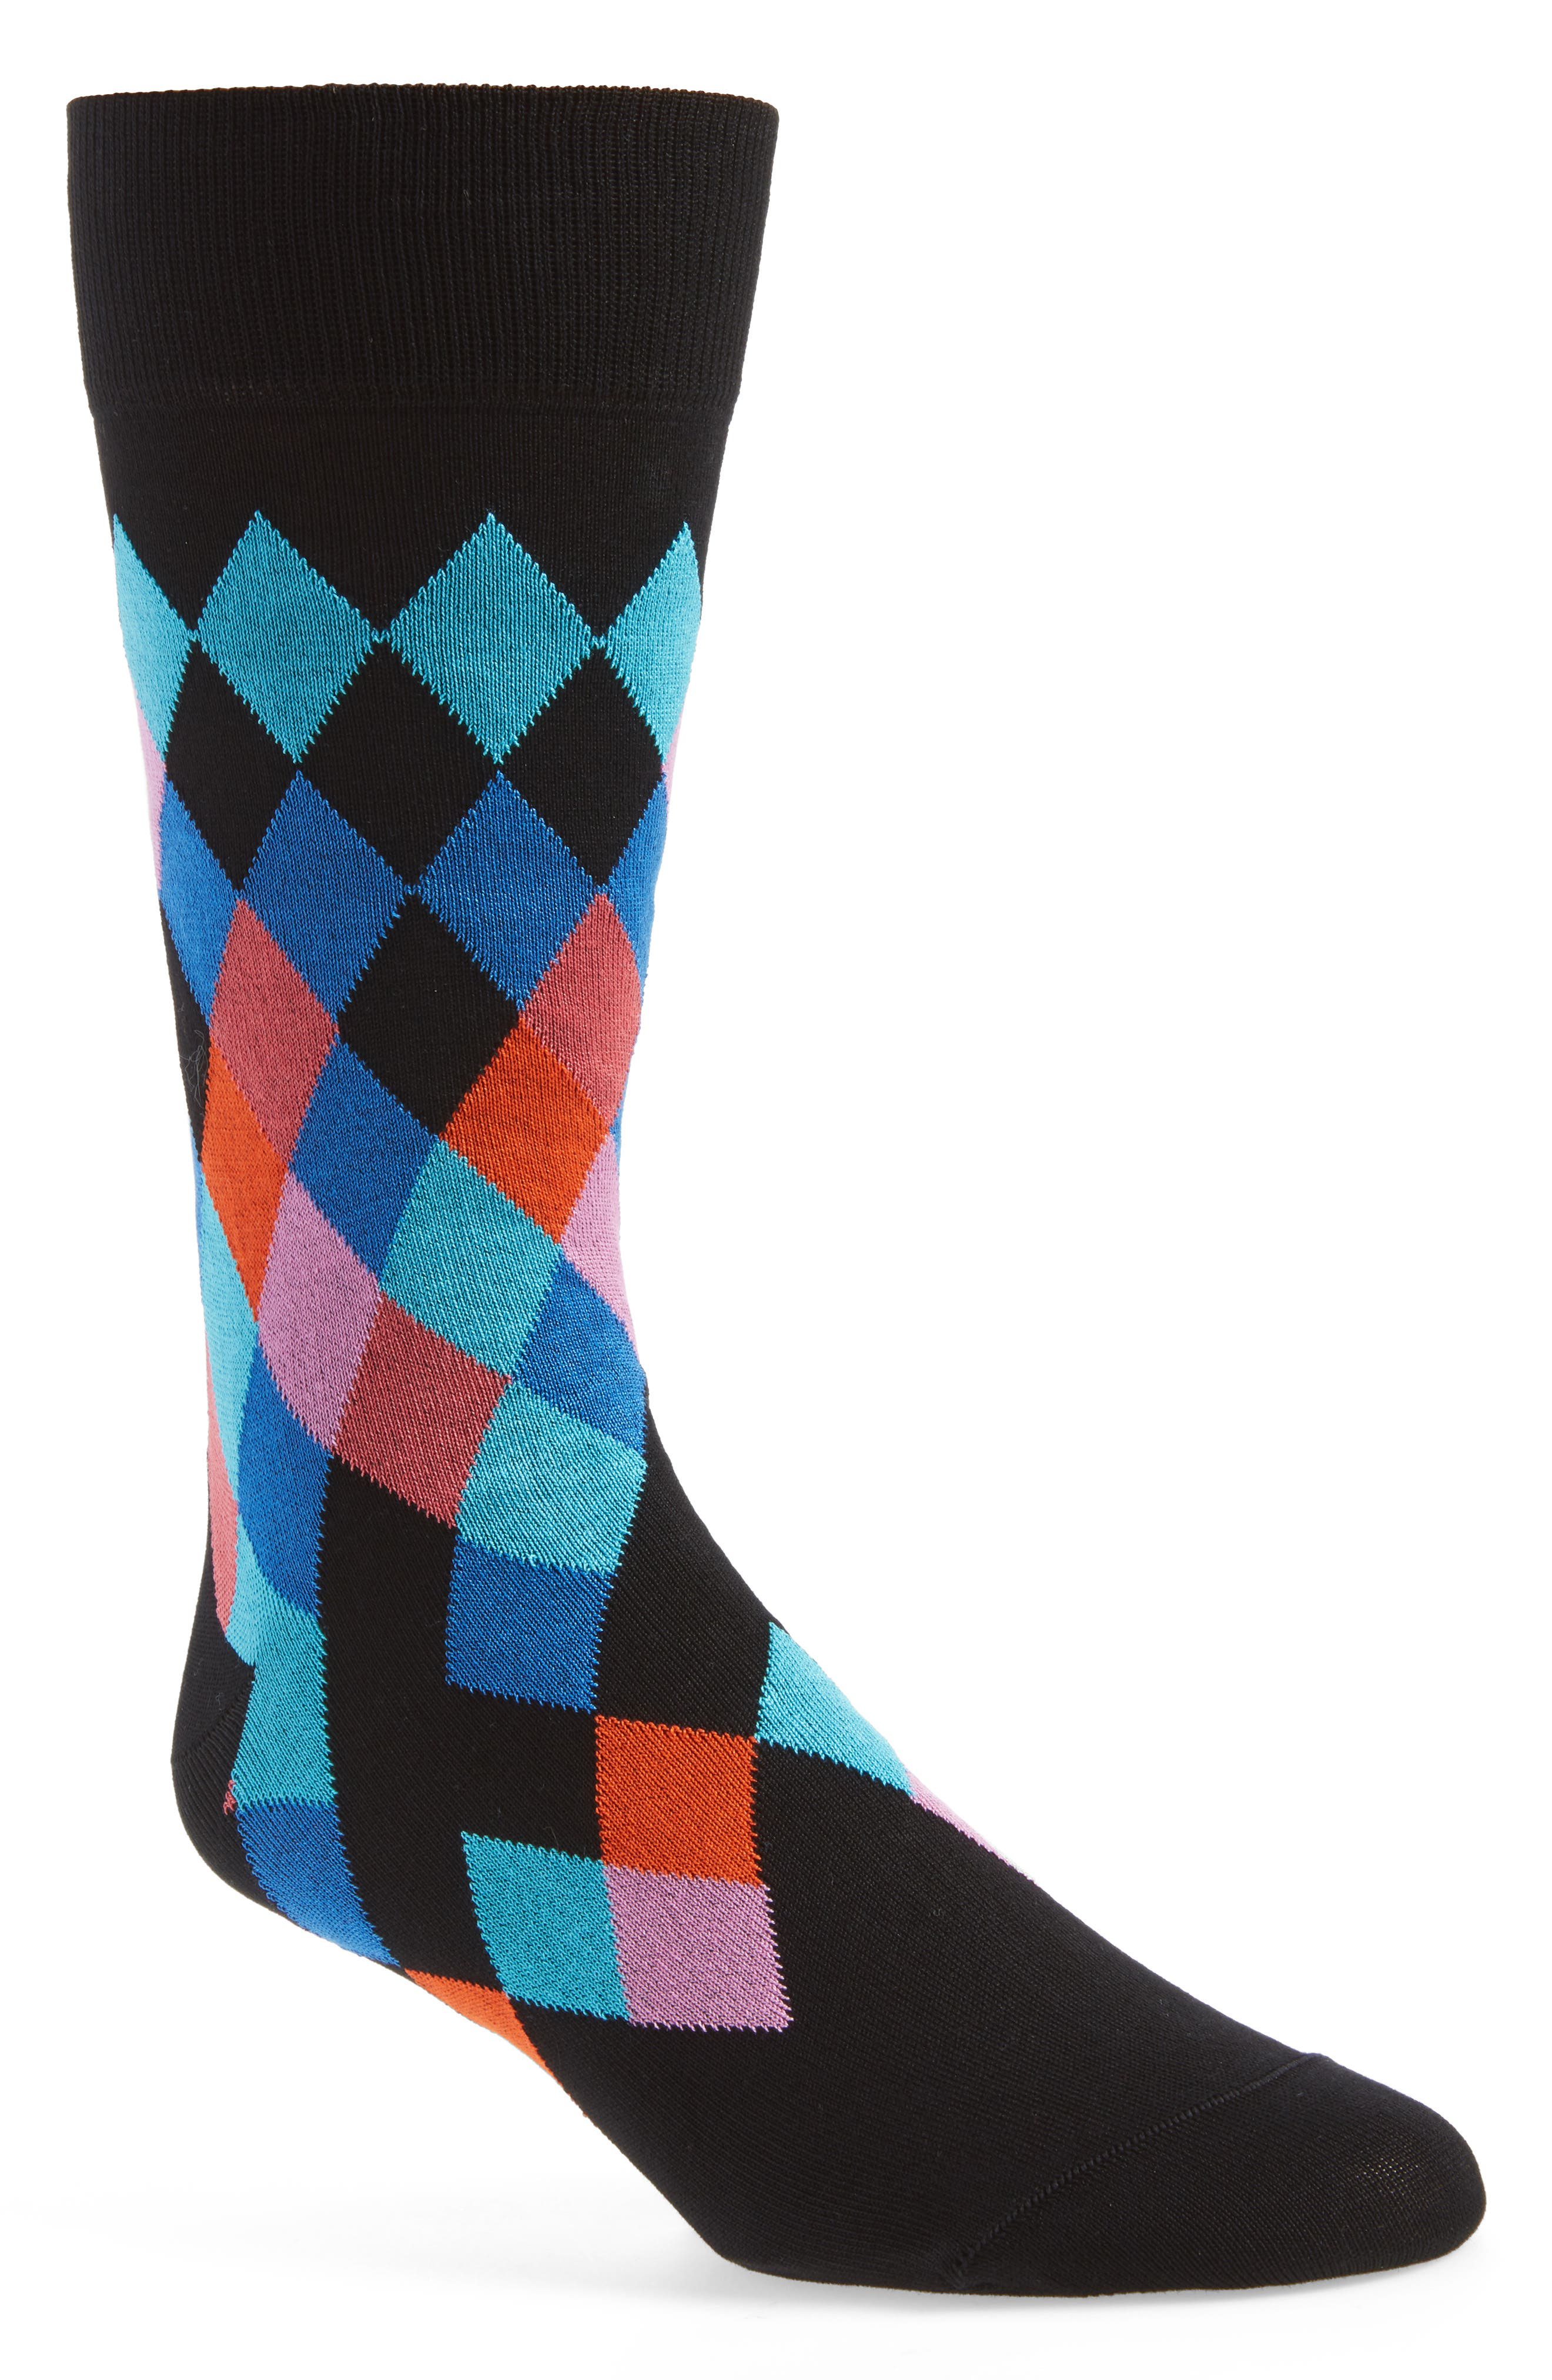 Cotton Blend Socks,                             Main thumbnail 1, color,                             410